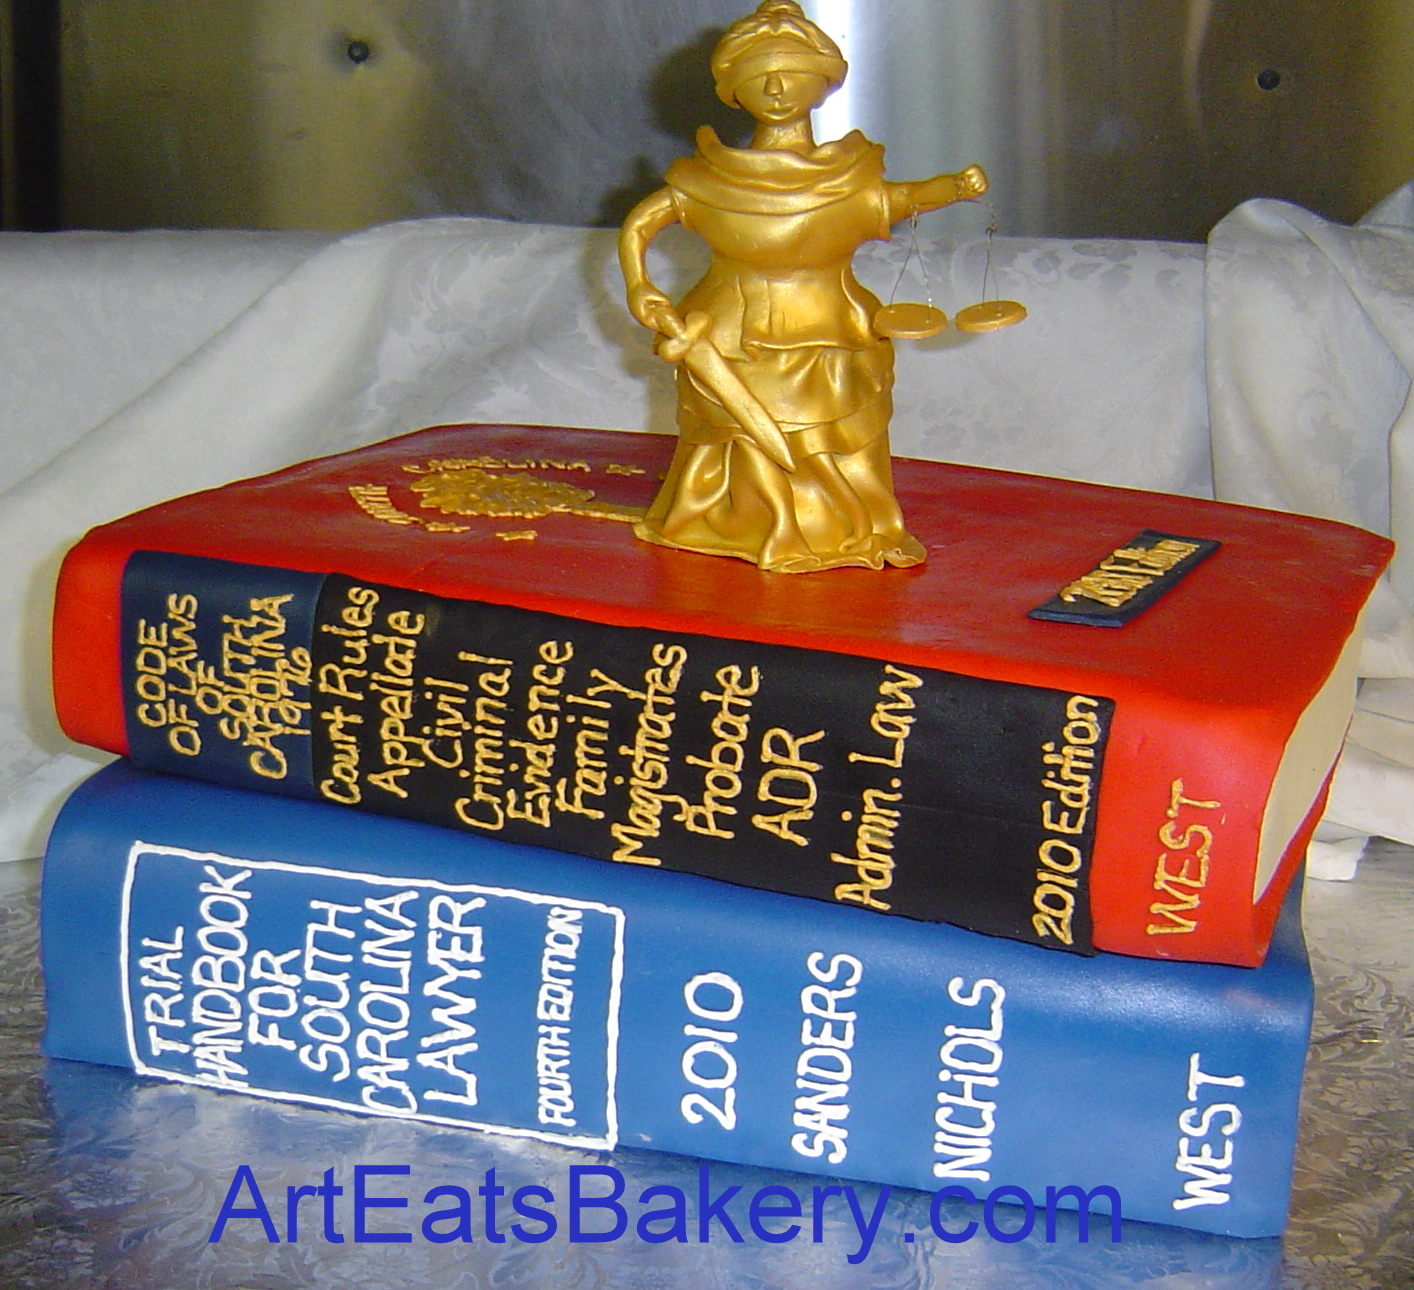 Lady Justice sugar figure on top of red and blue 3D law books custom 50th birthday cake for a lawyer.jpg